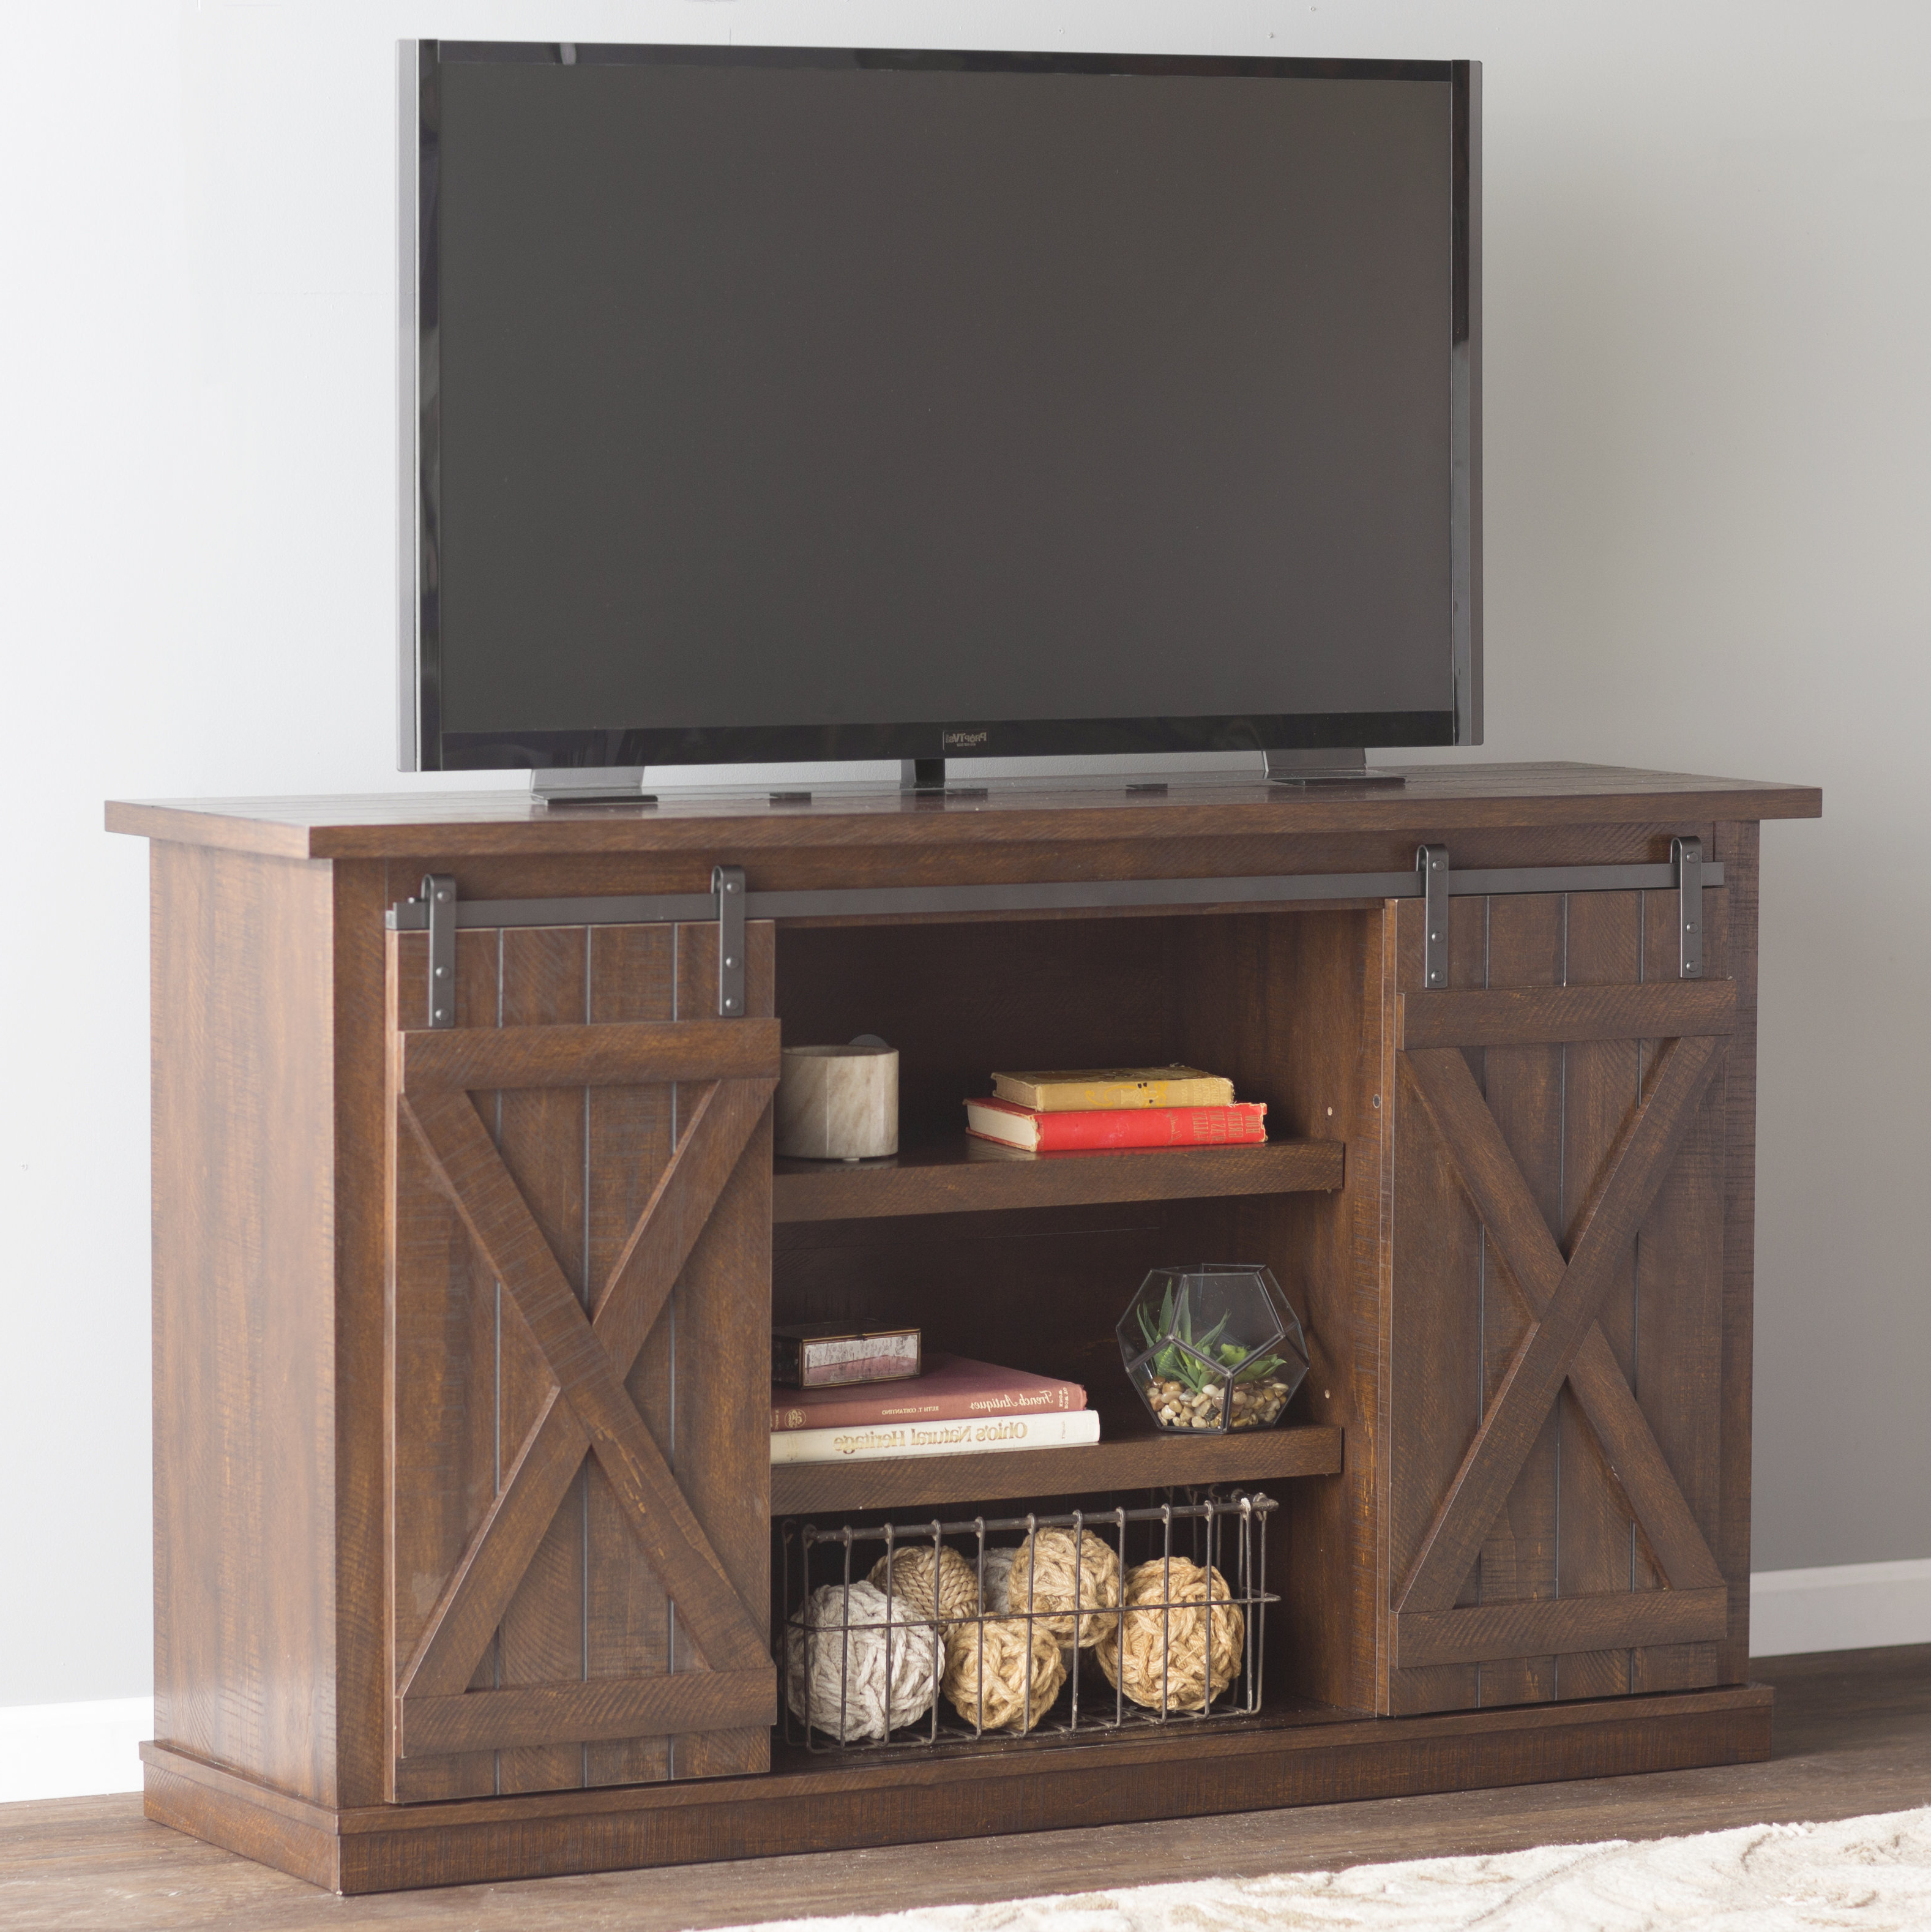 Wayfair Within Preferred Canyon 54 Inch Tv Stands (View 19 of 20)